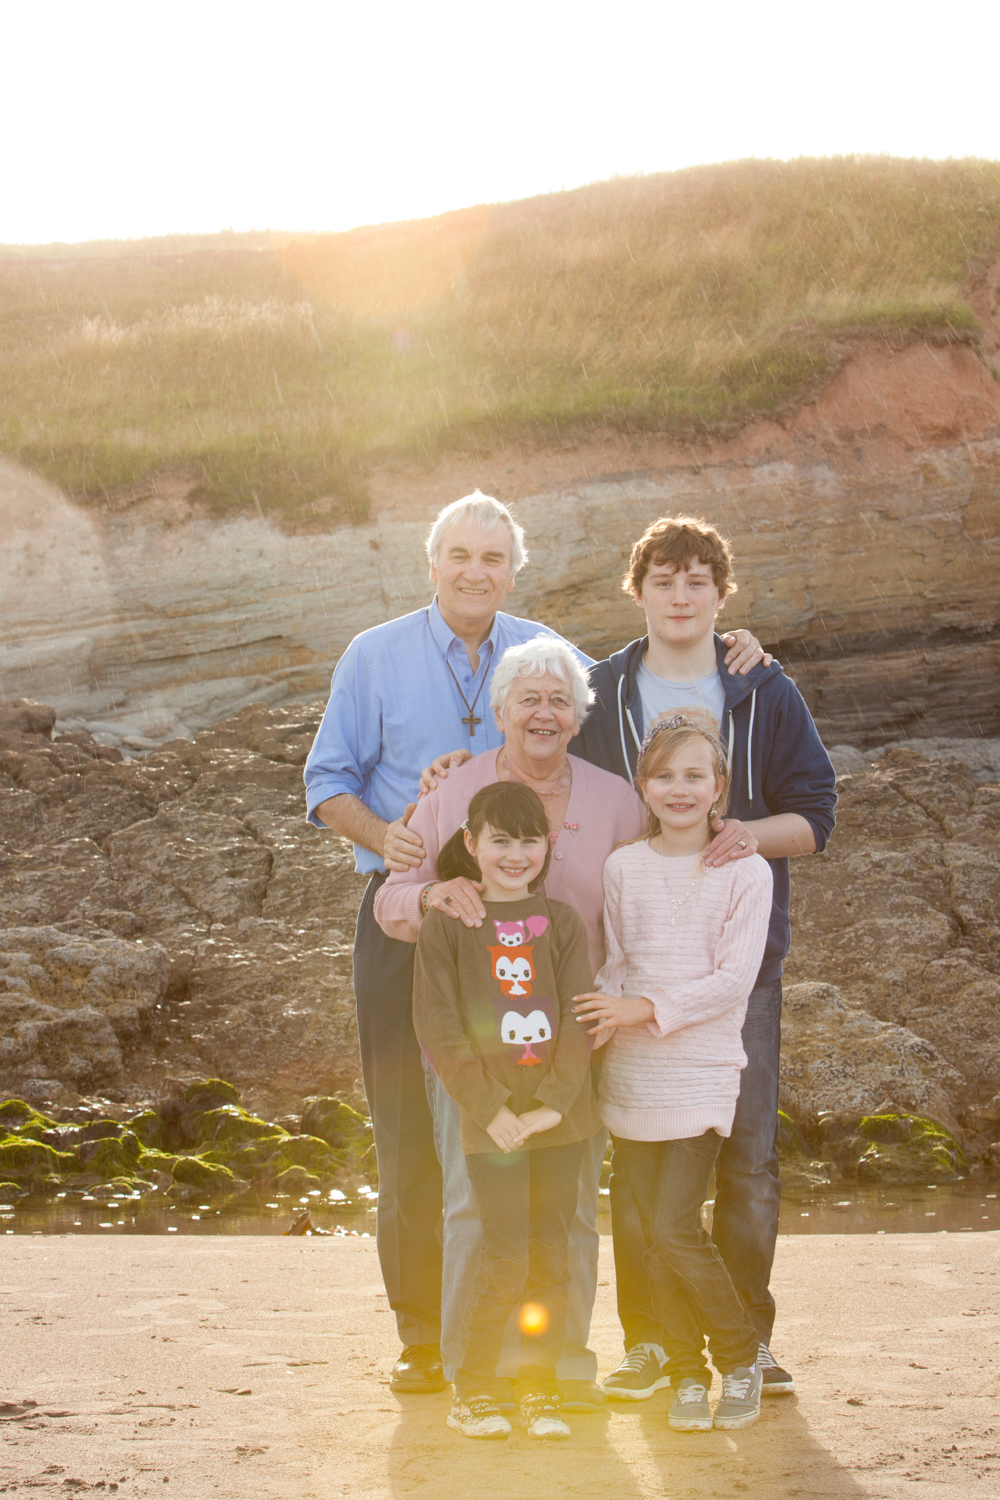 PICTORIAL_BERWICK_family-portrtait-beach-rainbow-sunshine-rain-love-1239.jpg